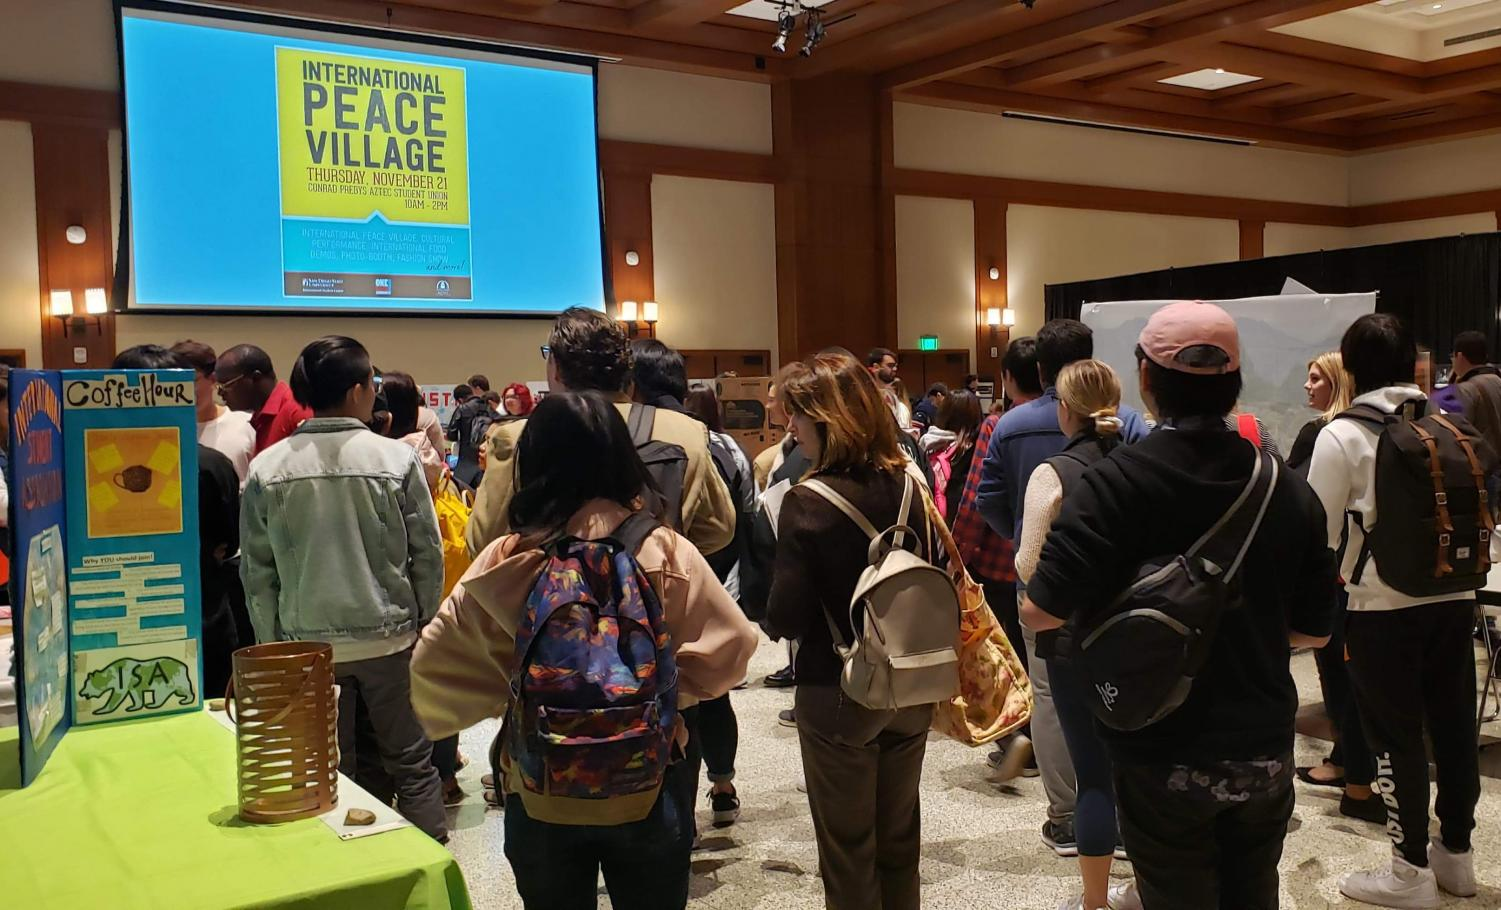 Dance and fashion were on display for the 63rd International Peace Village, held in Montezuma Hall.